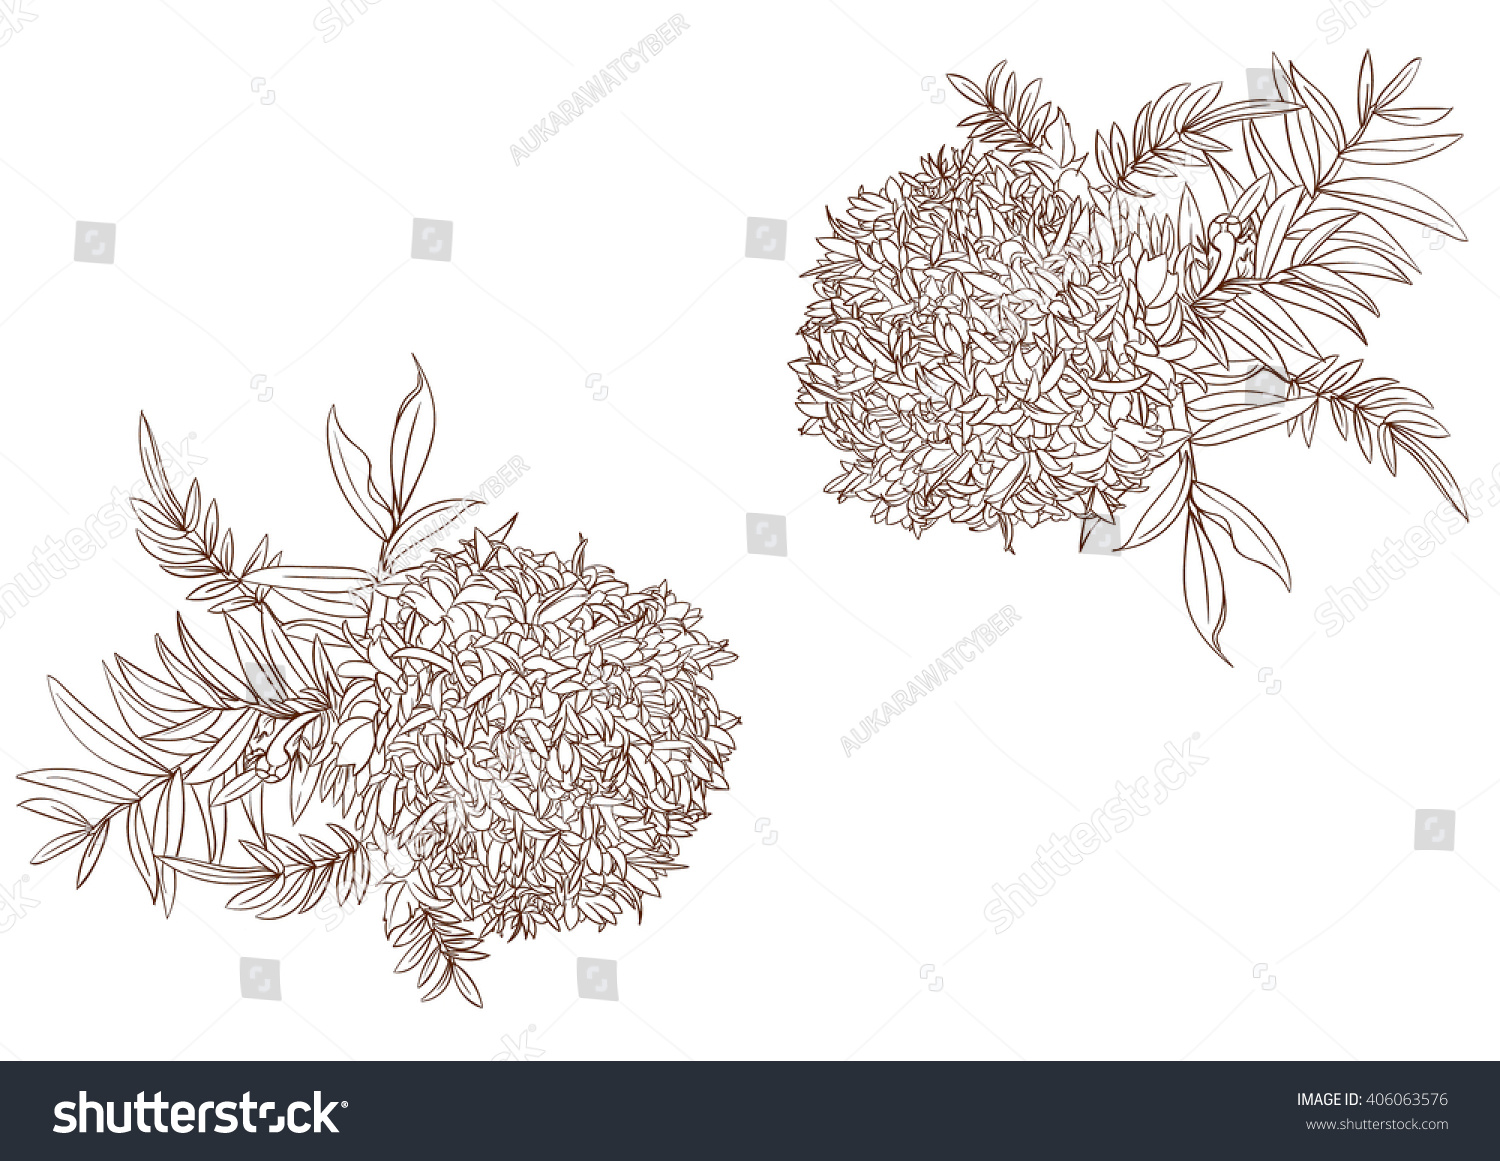 Marigold Flower Line Drawing : Marigold drawing flower stock vector shutterstock